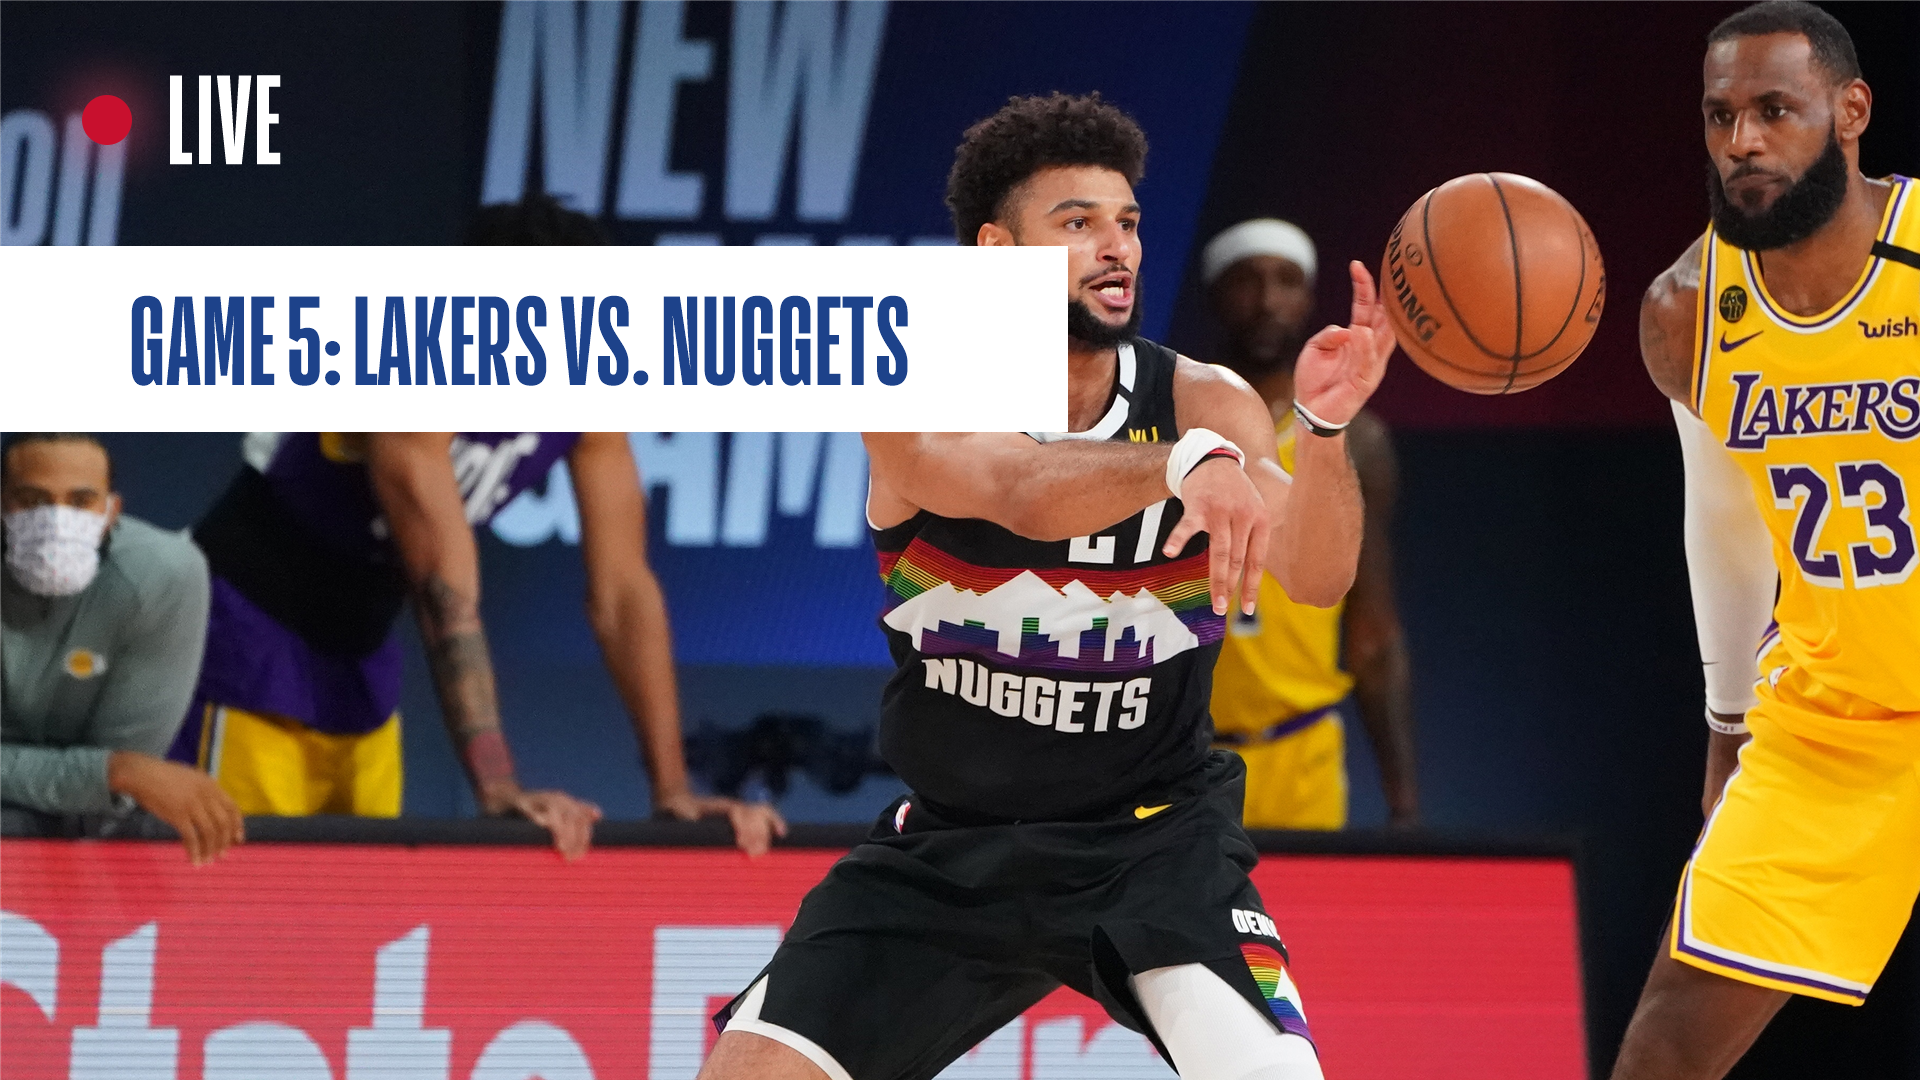 Los Angeles Lakers Vs Denver Nuggets Game 5 Score Updates News Stats And Highlights Nba Com India The Official Site Of The Nba